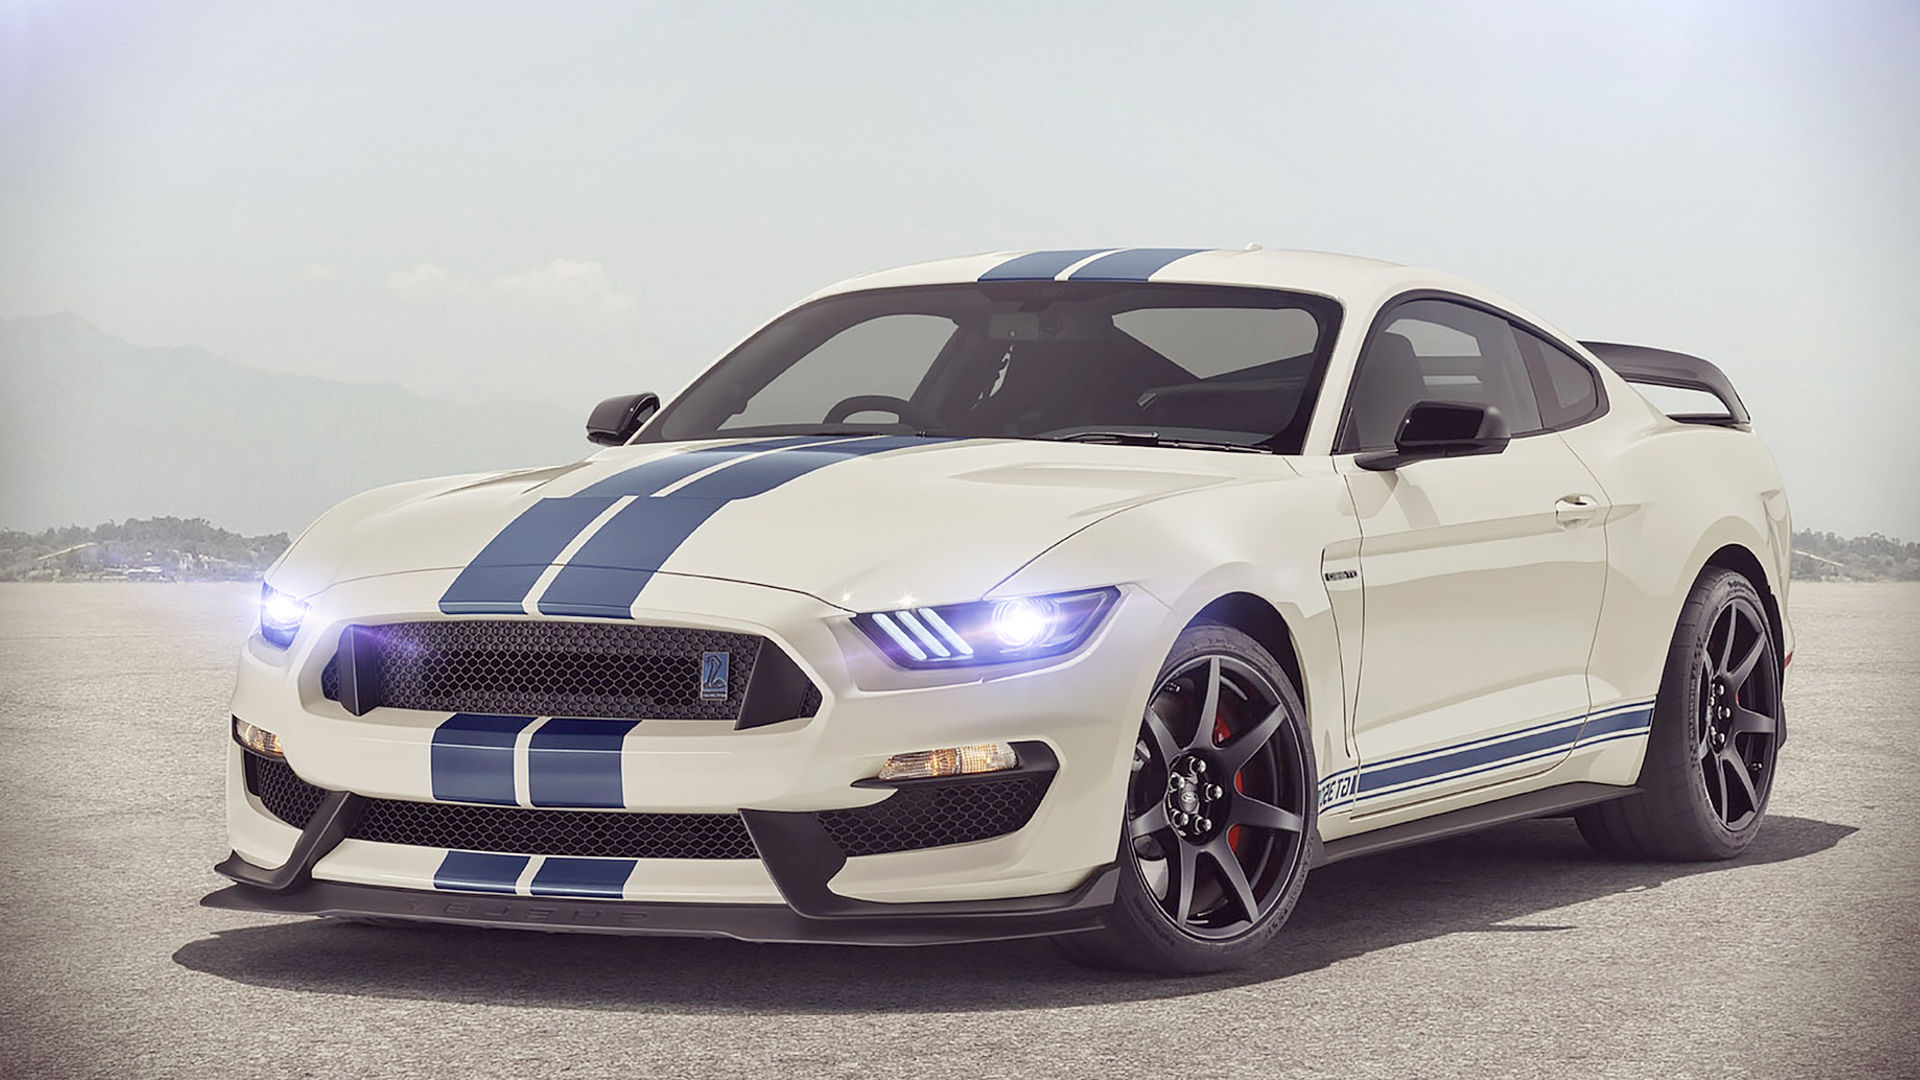 2020 Ford Mustang Shelby GT350 Heritage Edition Wallpaper 1920x1080